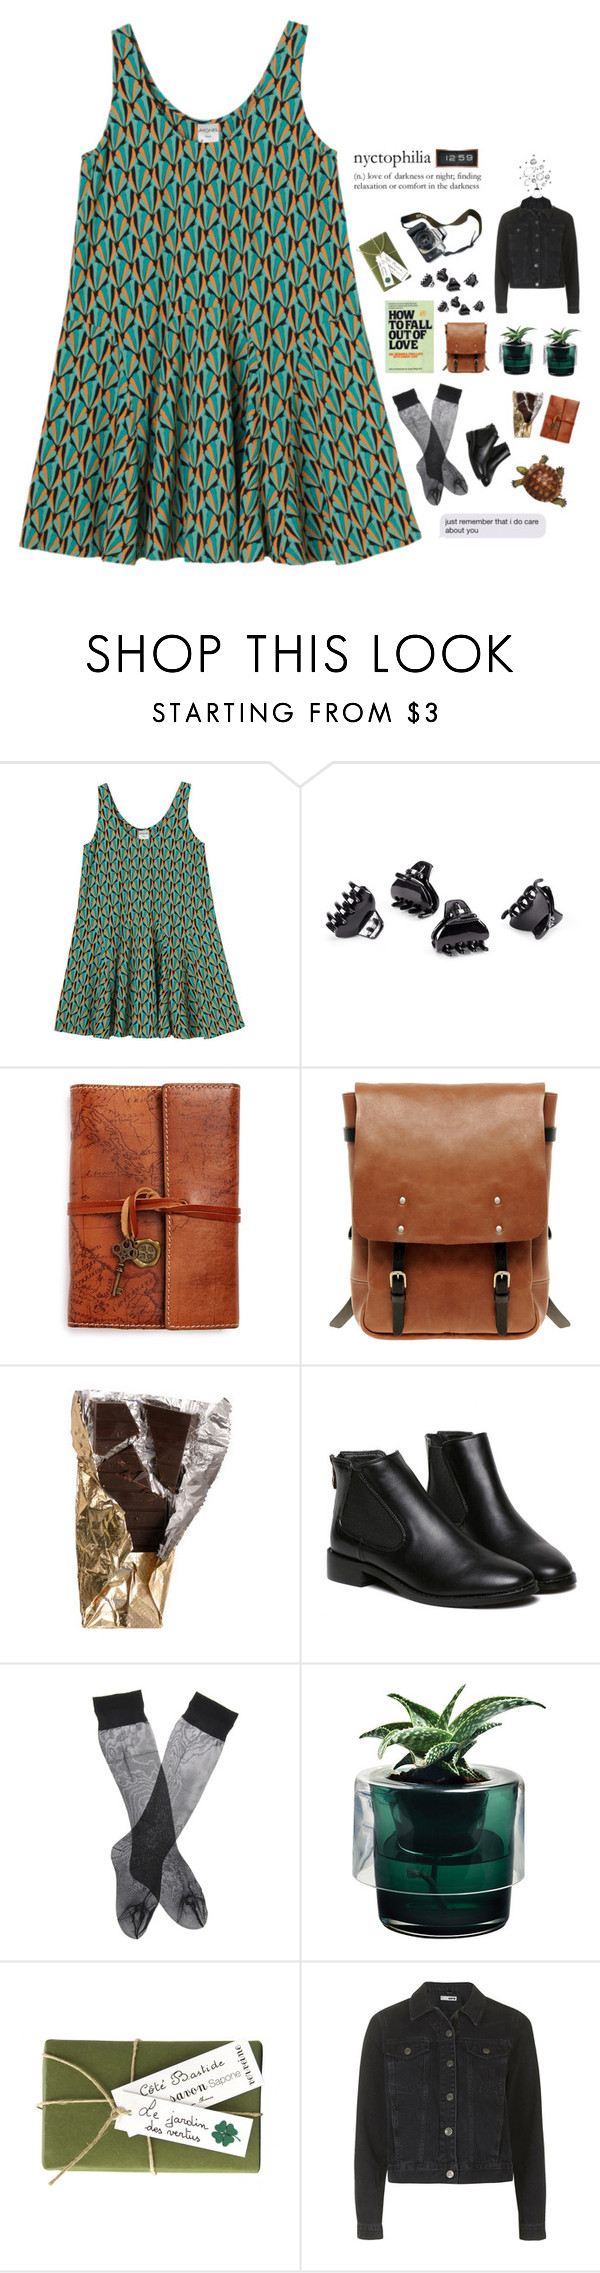 """What are we doing?"" by imarunightingale ❤ liked on Polyvore featuring beauty, Monki, Eos, H&M, Patricia Nash, Ally Capellino, Nude, Jayson Home, She's So and Topshop"